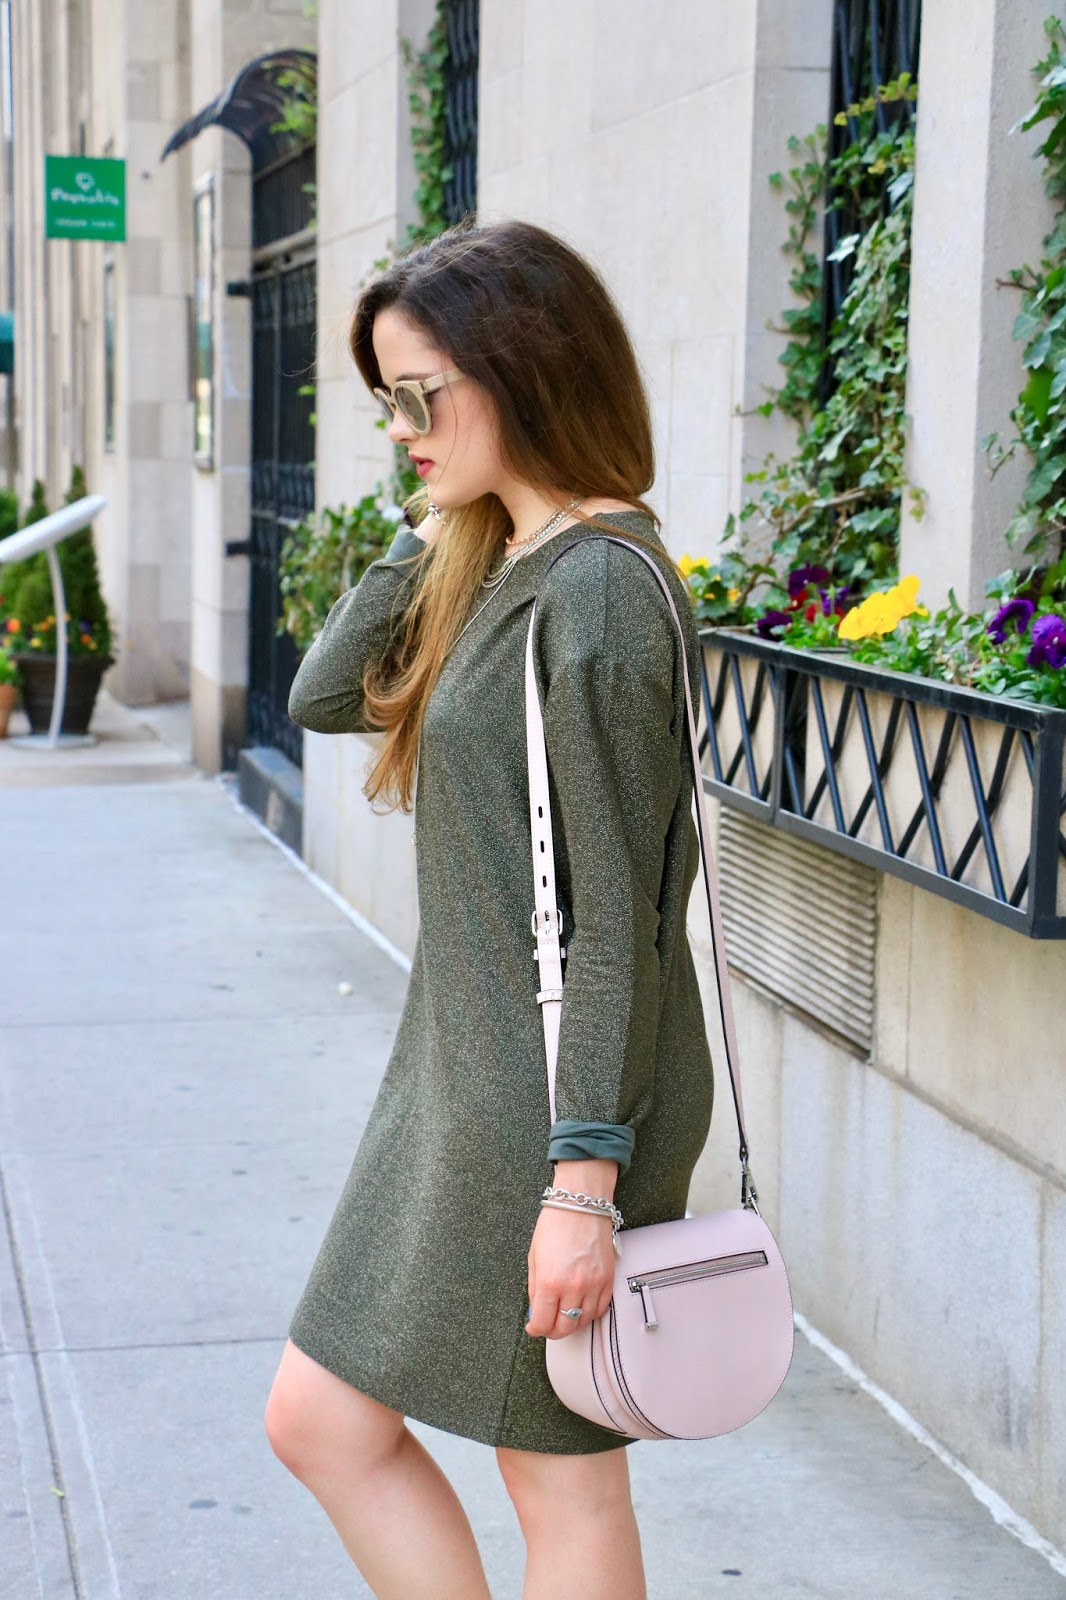 Fashion blogger Kathleen Harper wearing green sparkly sweater dress